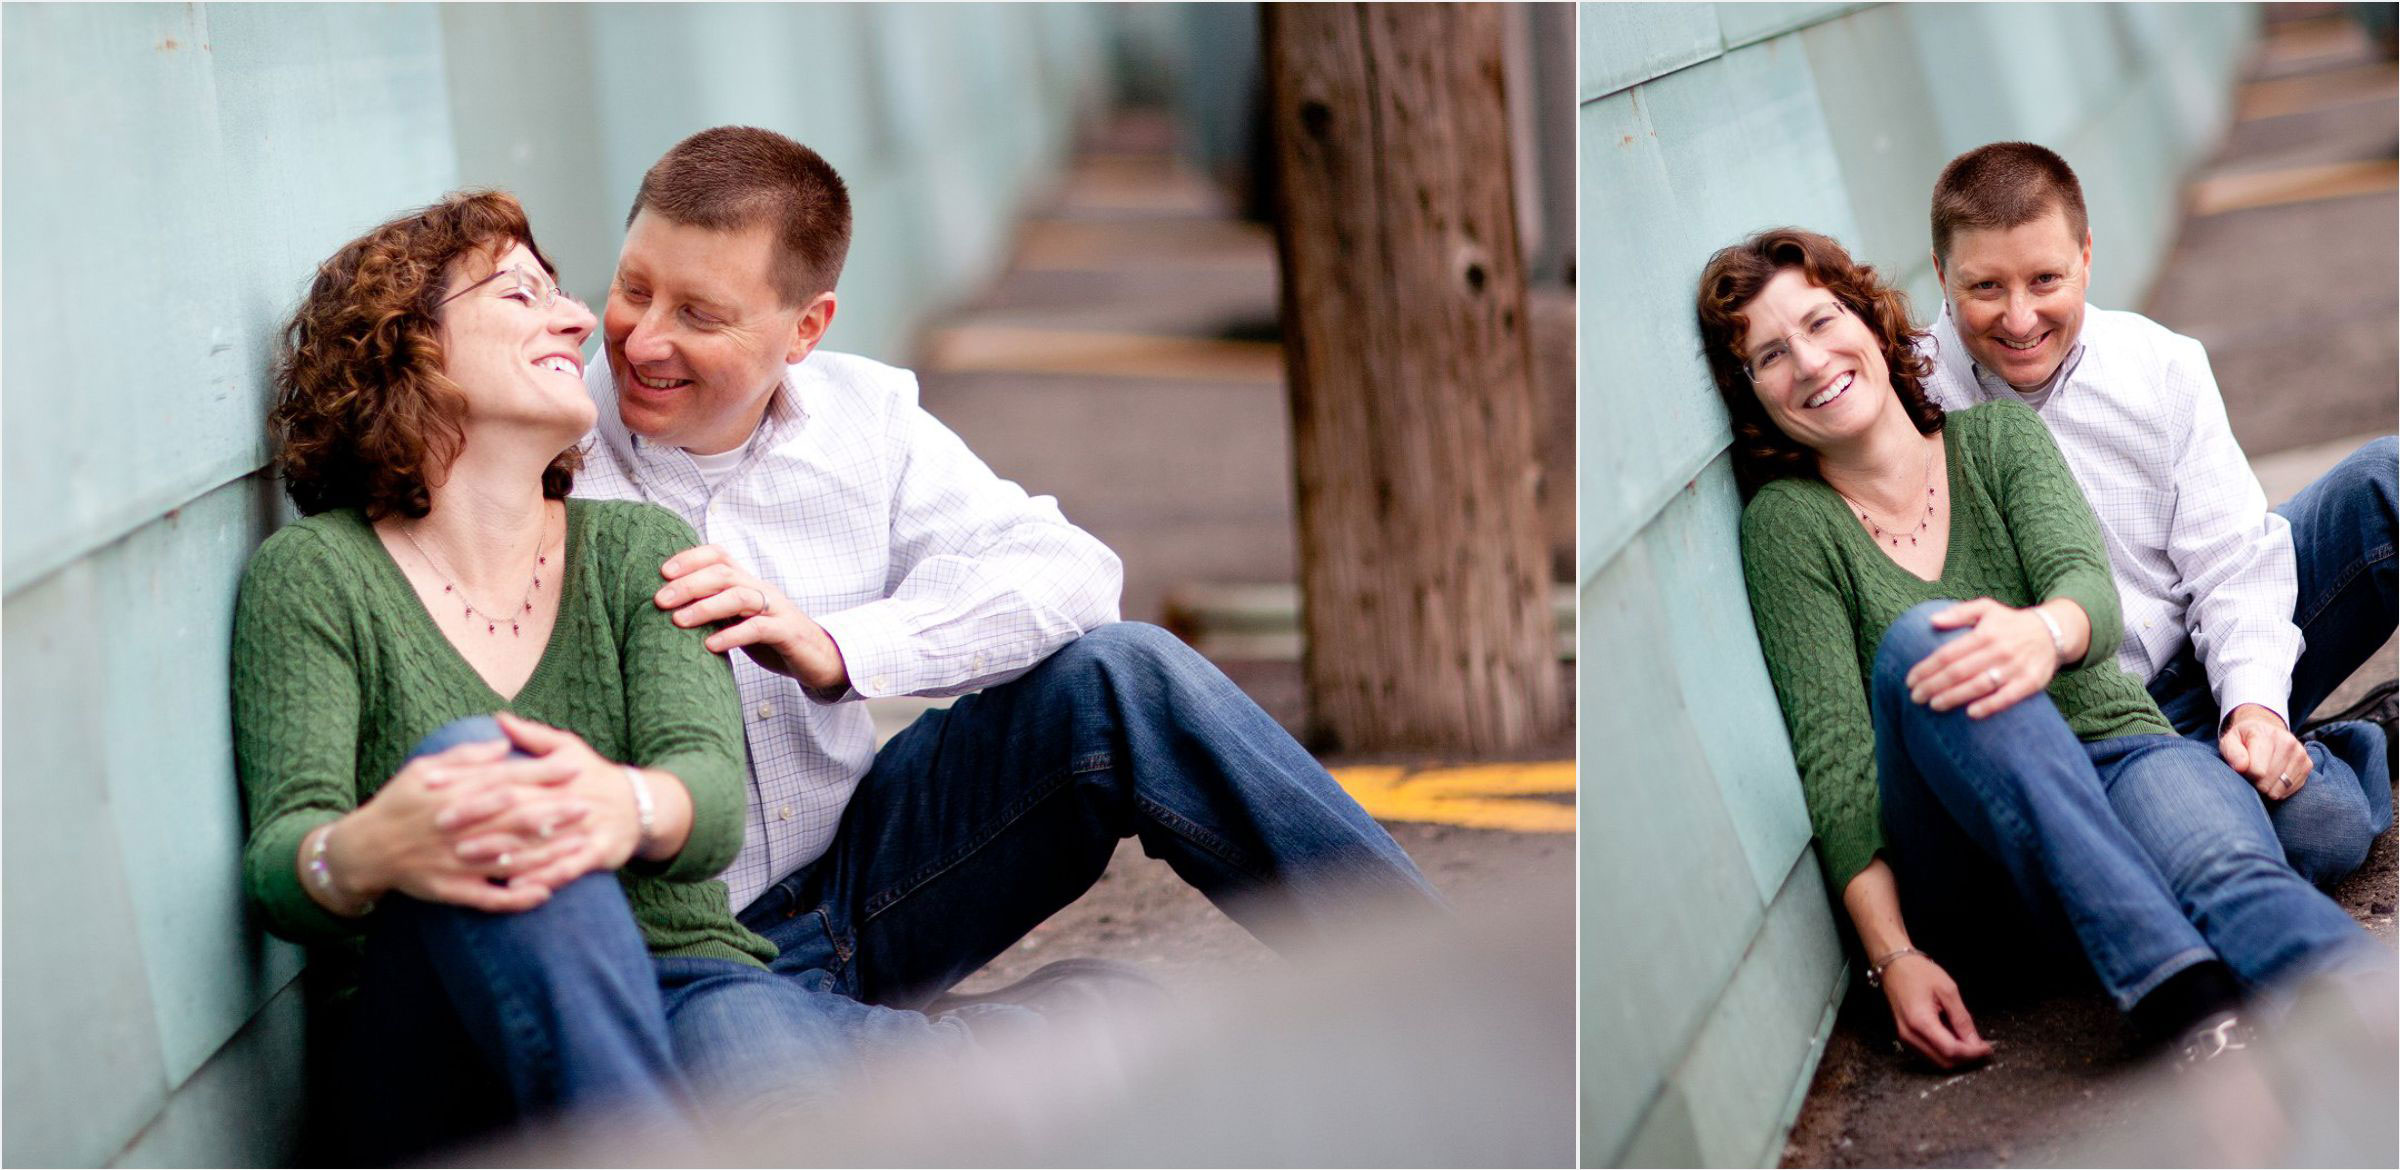 07-Denver-Family-Photography.jpg